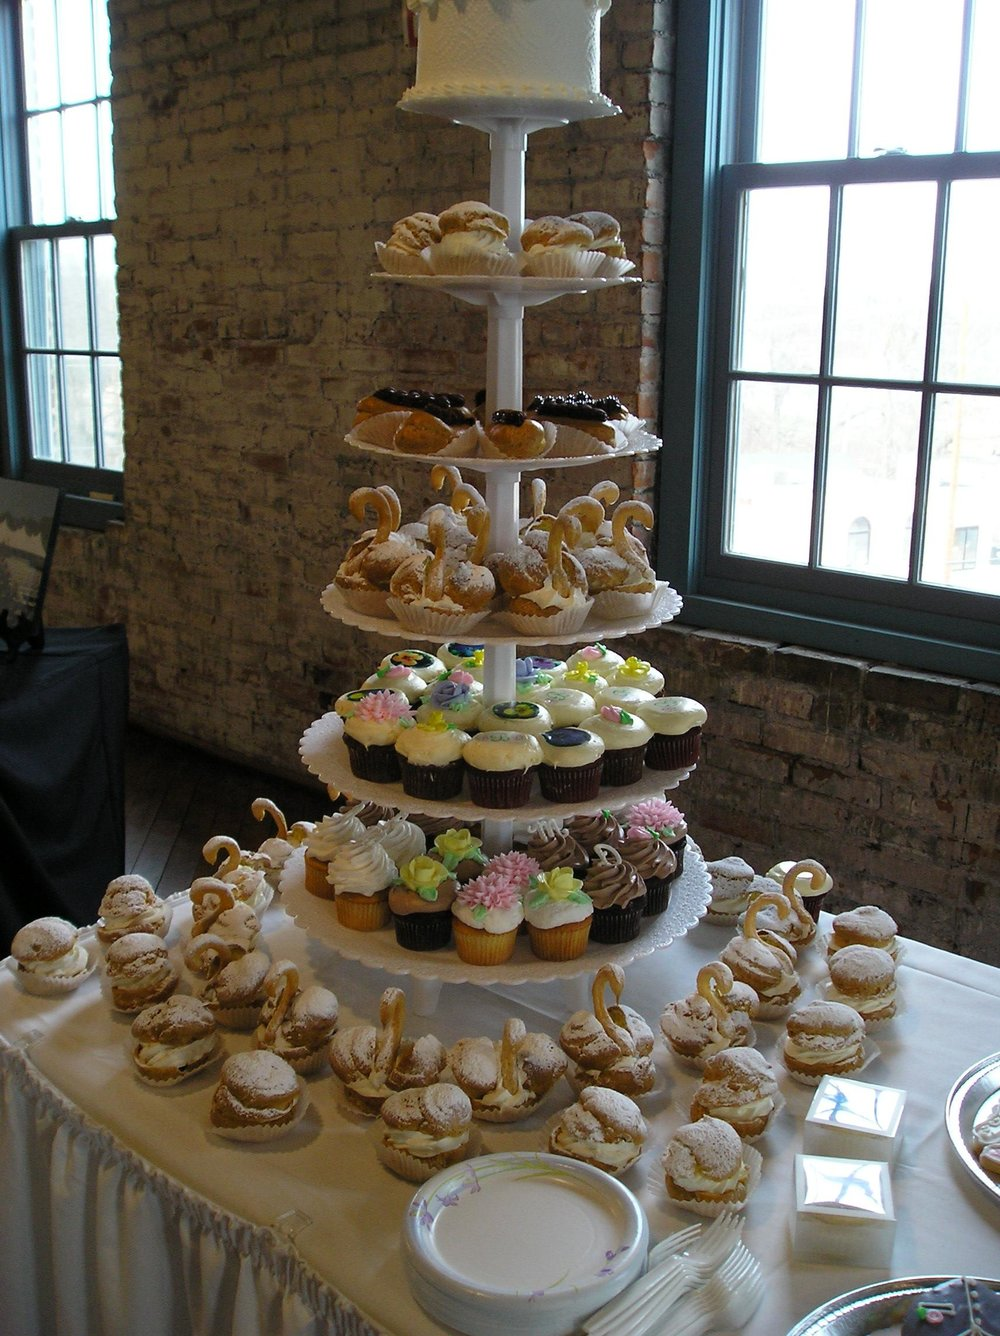 Cupcake Tree - Tree serves up to 96 regular sized cupcakes. More may be added around the base on the table.